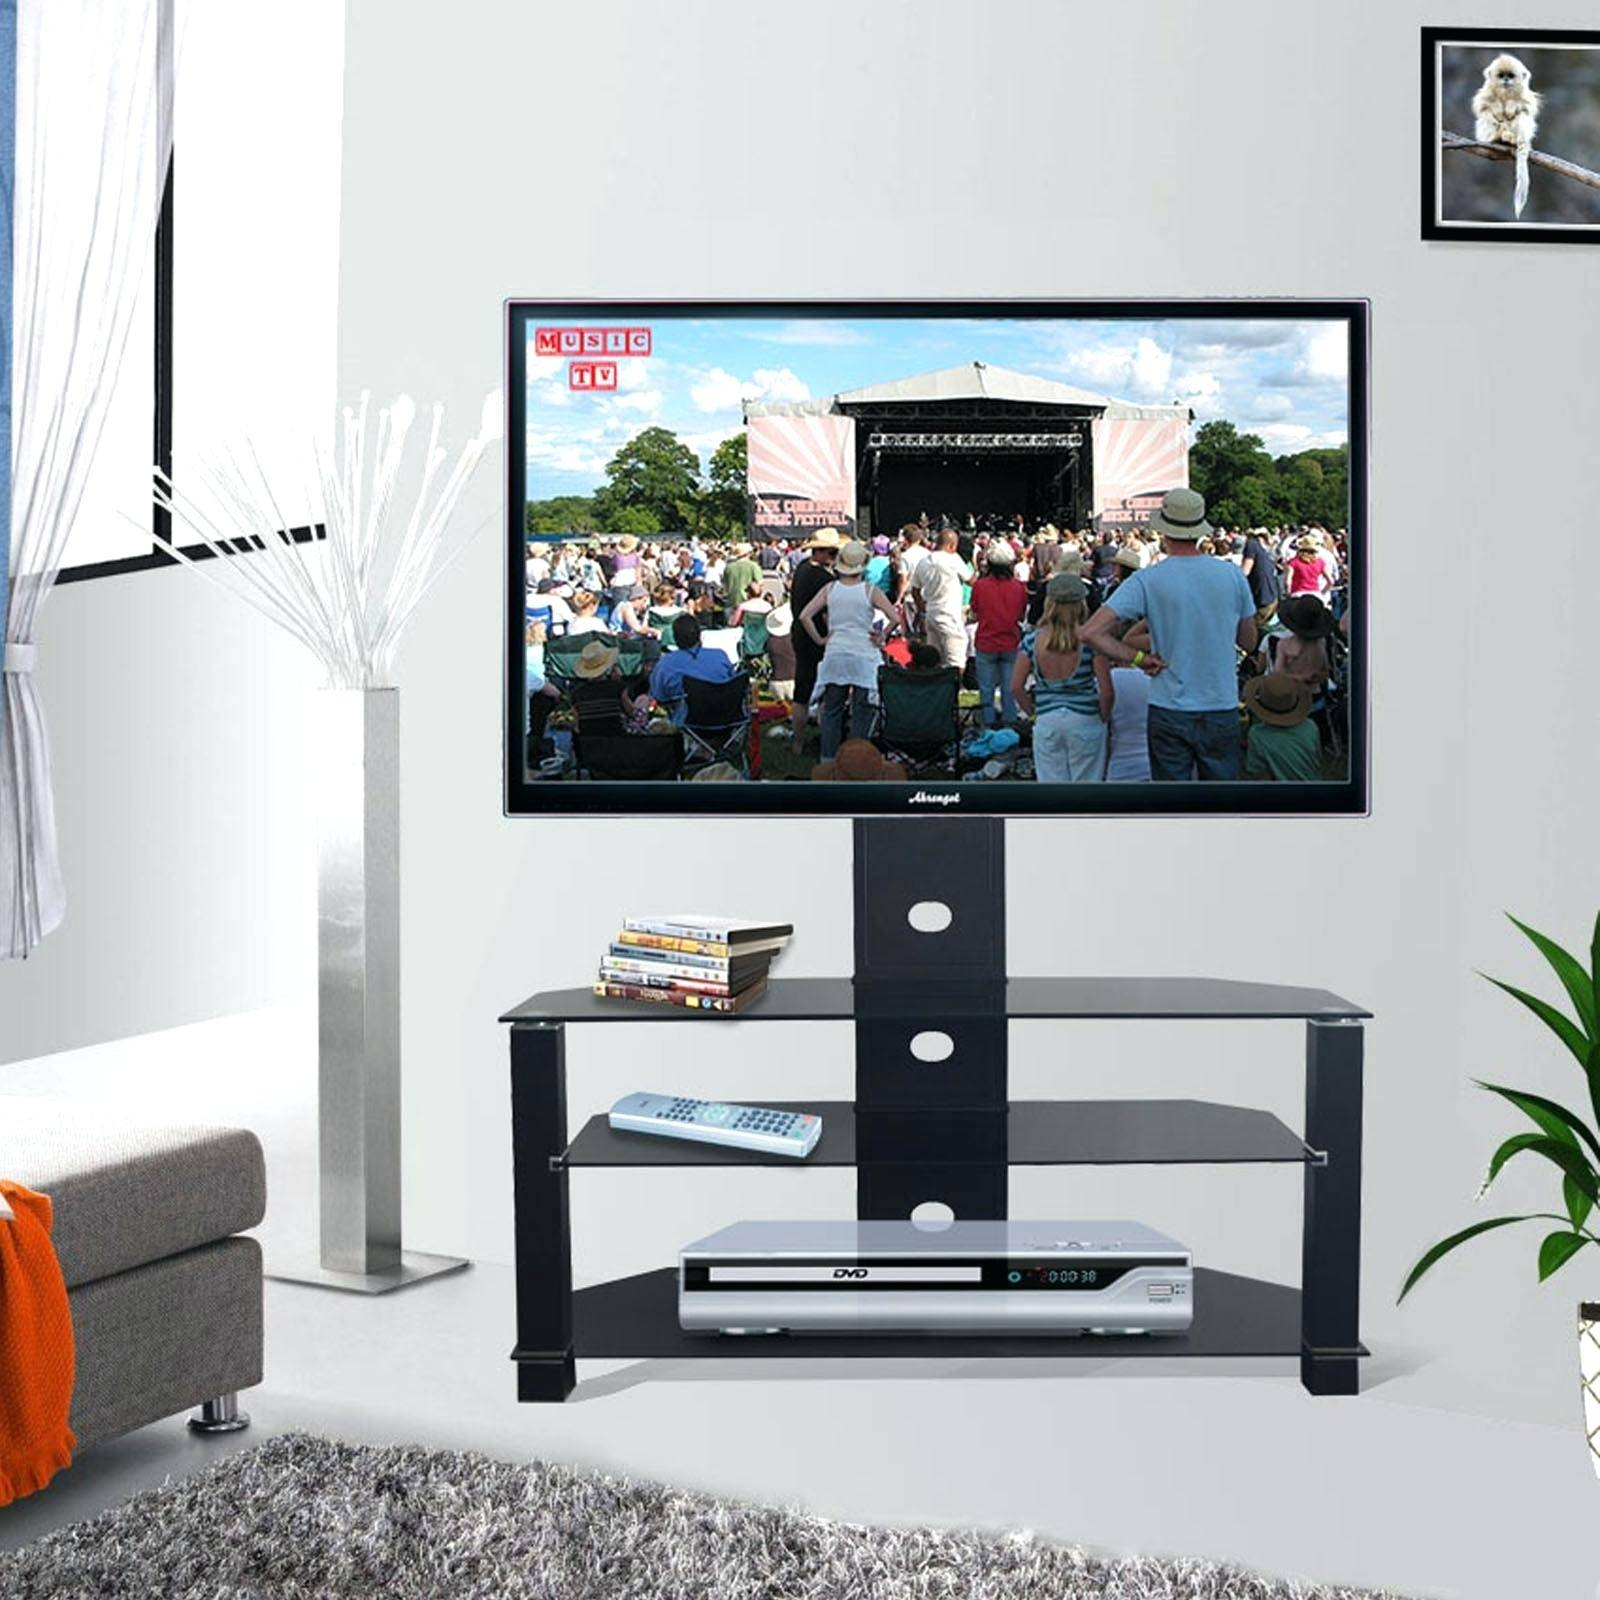 Tv Stand : Aliexpresscom Buy Black Articulating Adjustable Swivel regarding Tv Stands Swivel Mount (Image 7 of 15)